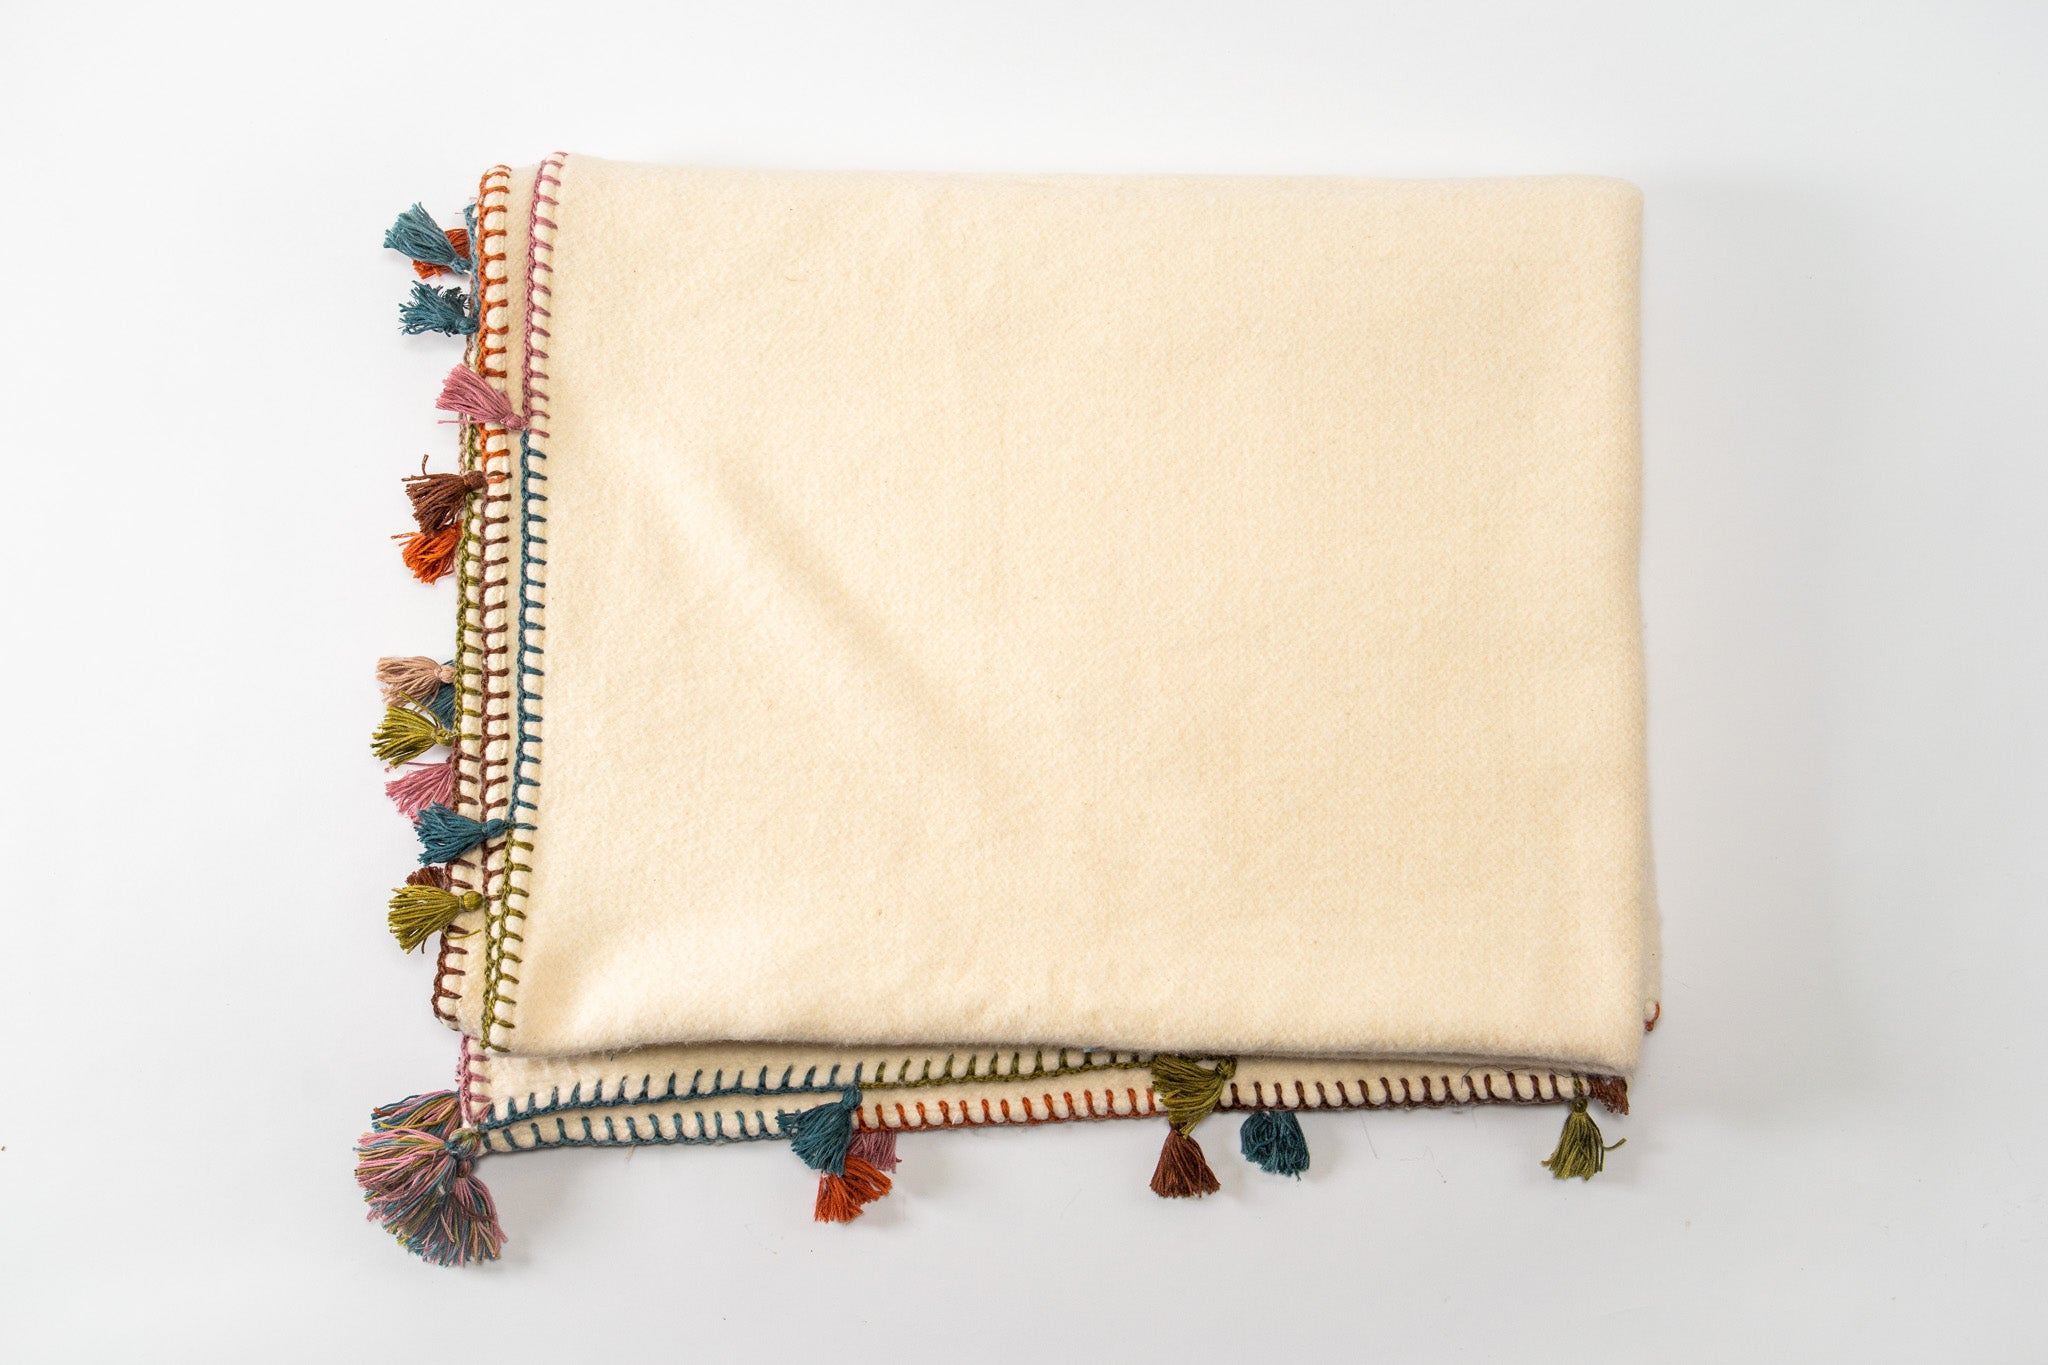 Throw: Organic cotton with hand stitched border and tassels - TH10